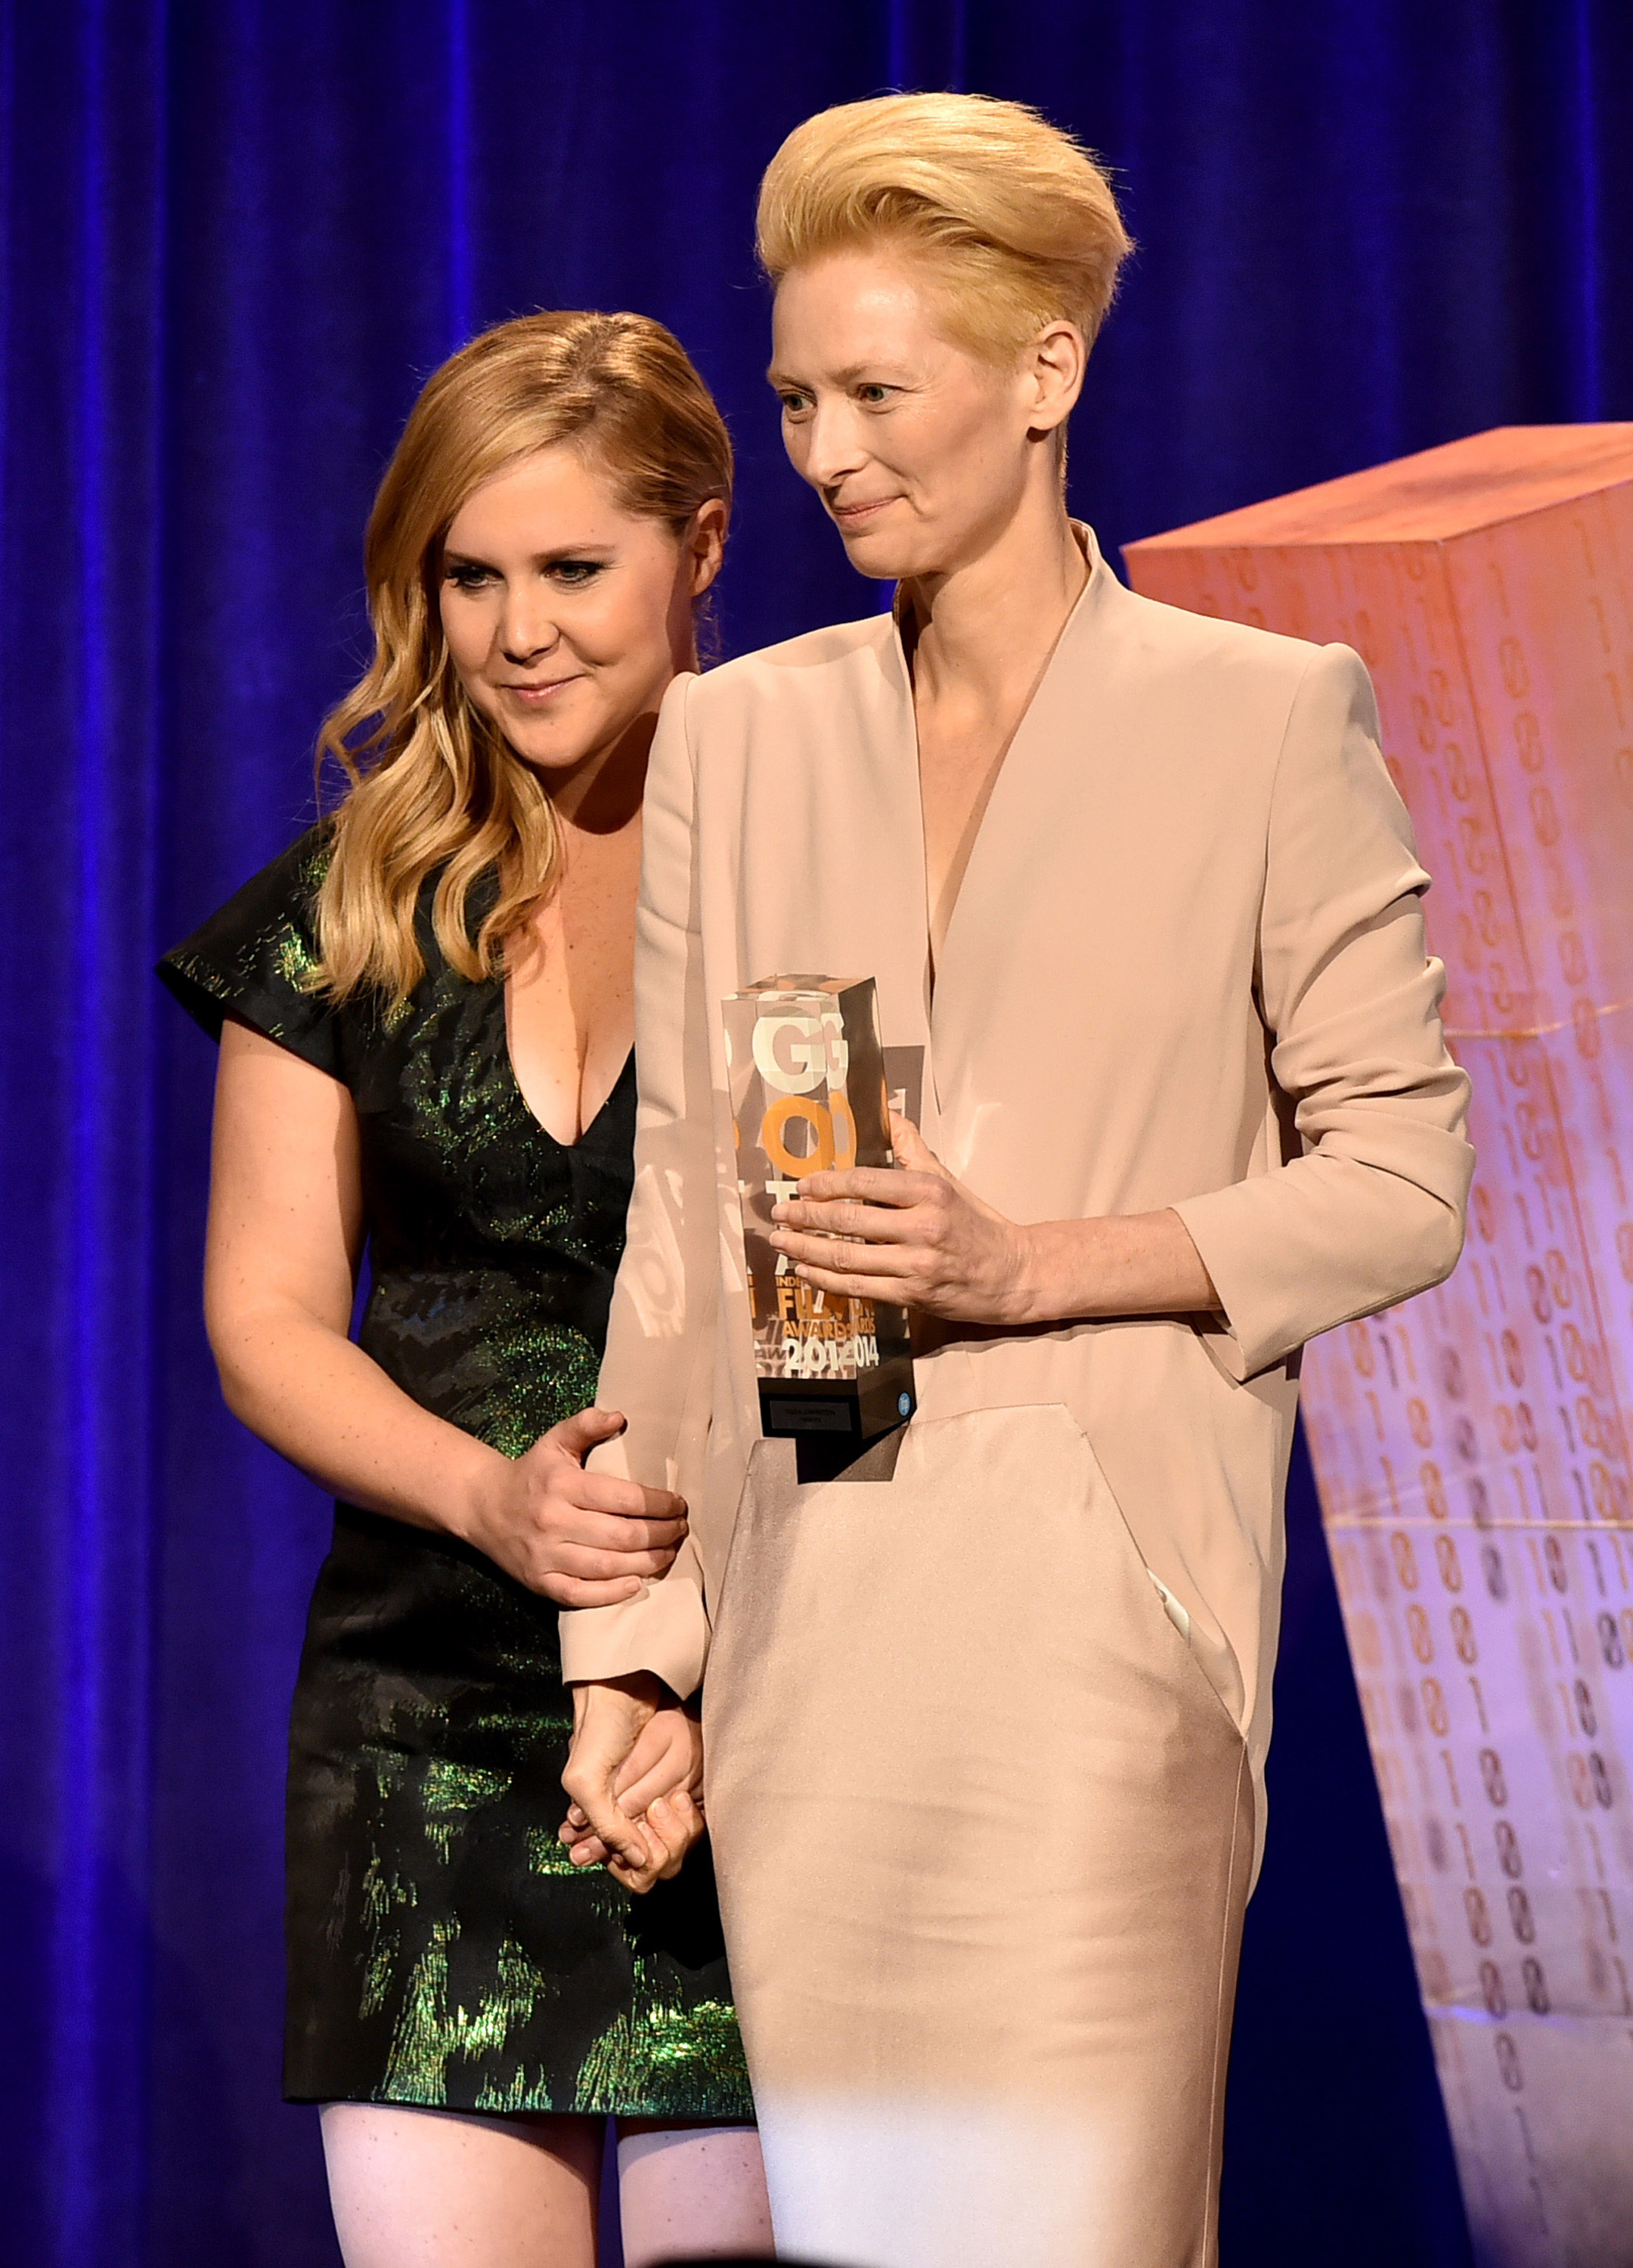 Amy Schumer and Tilda Swinton attend IFP's 24th Gotham Independent Film Awards at Cipriani, Wall Street on December 1, 2014 in New York City.